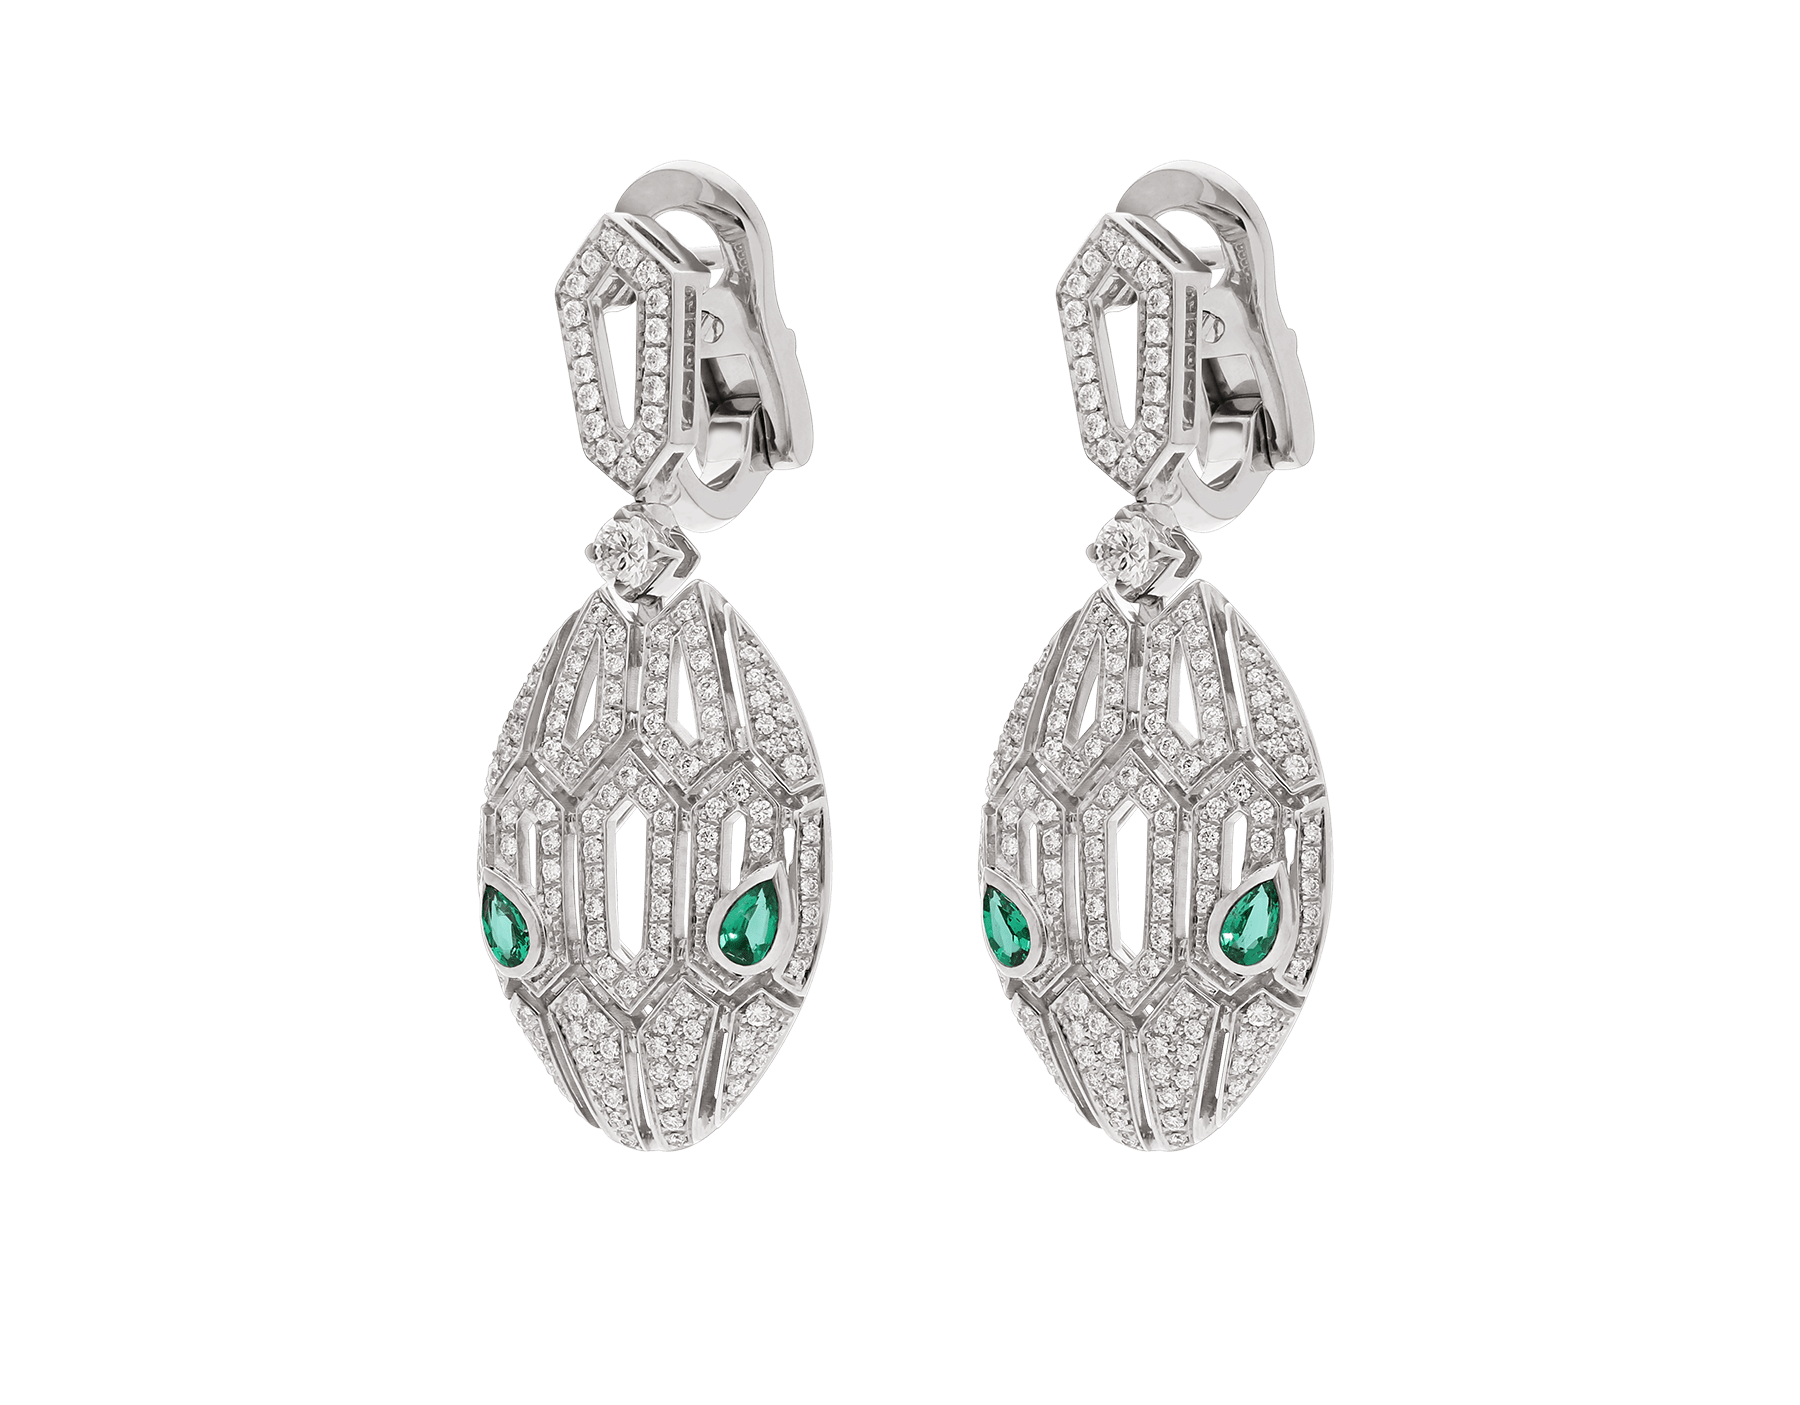 Serpenti earrings in 18 kt white gold, set with emerald eyes and full pavé diamonds. 352756 image 2